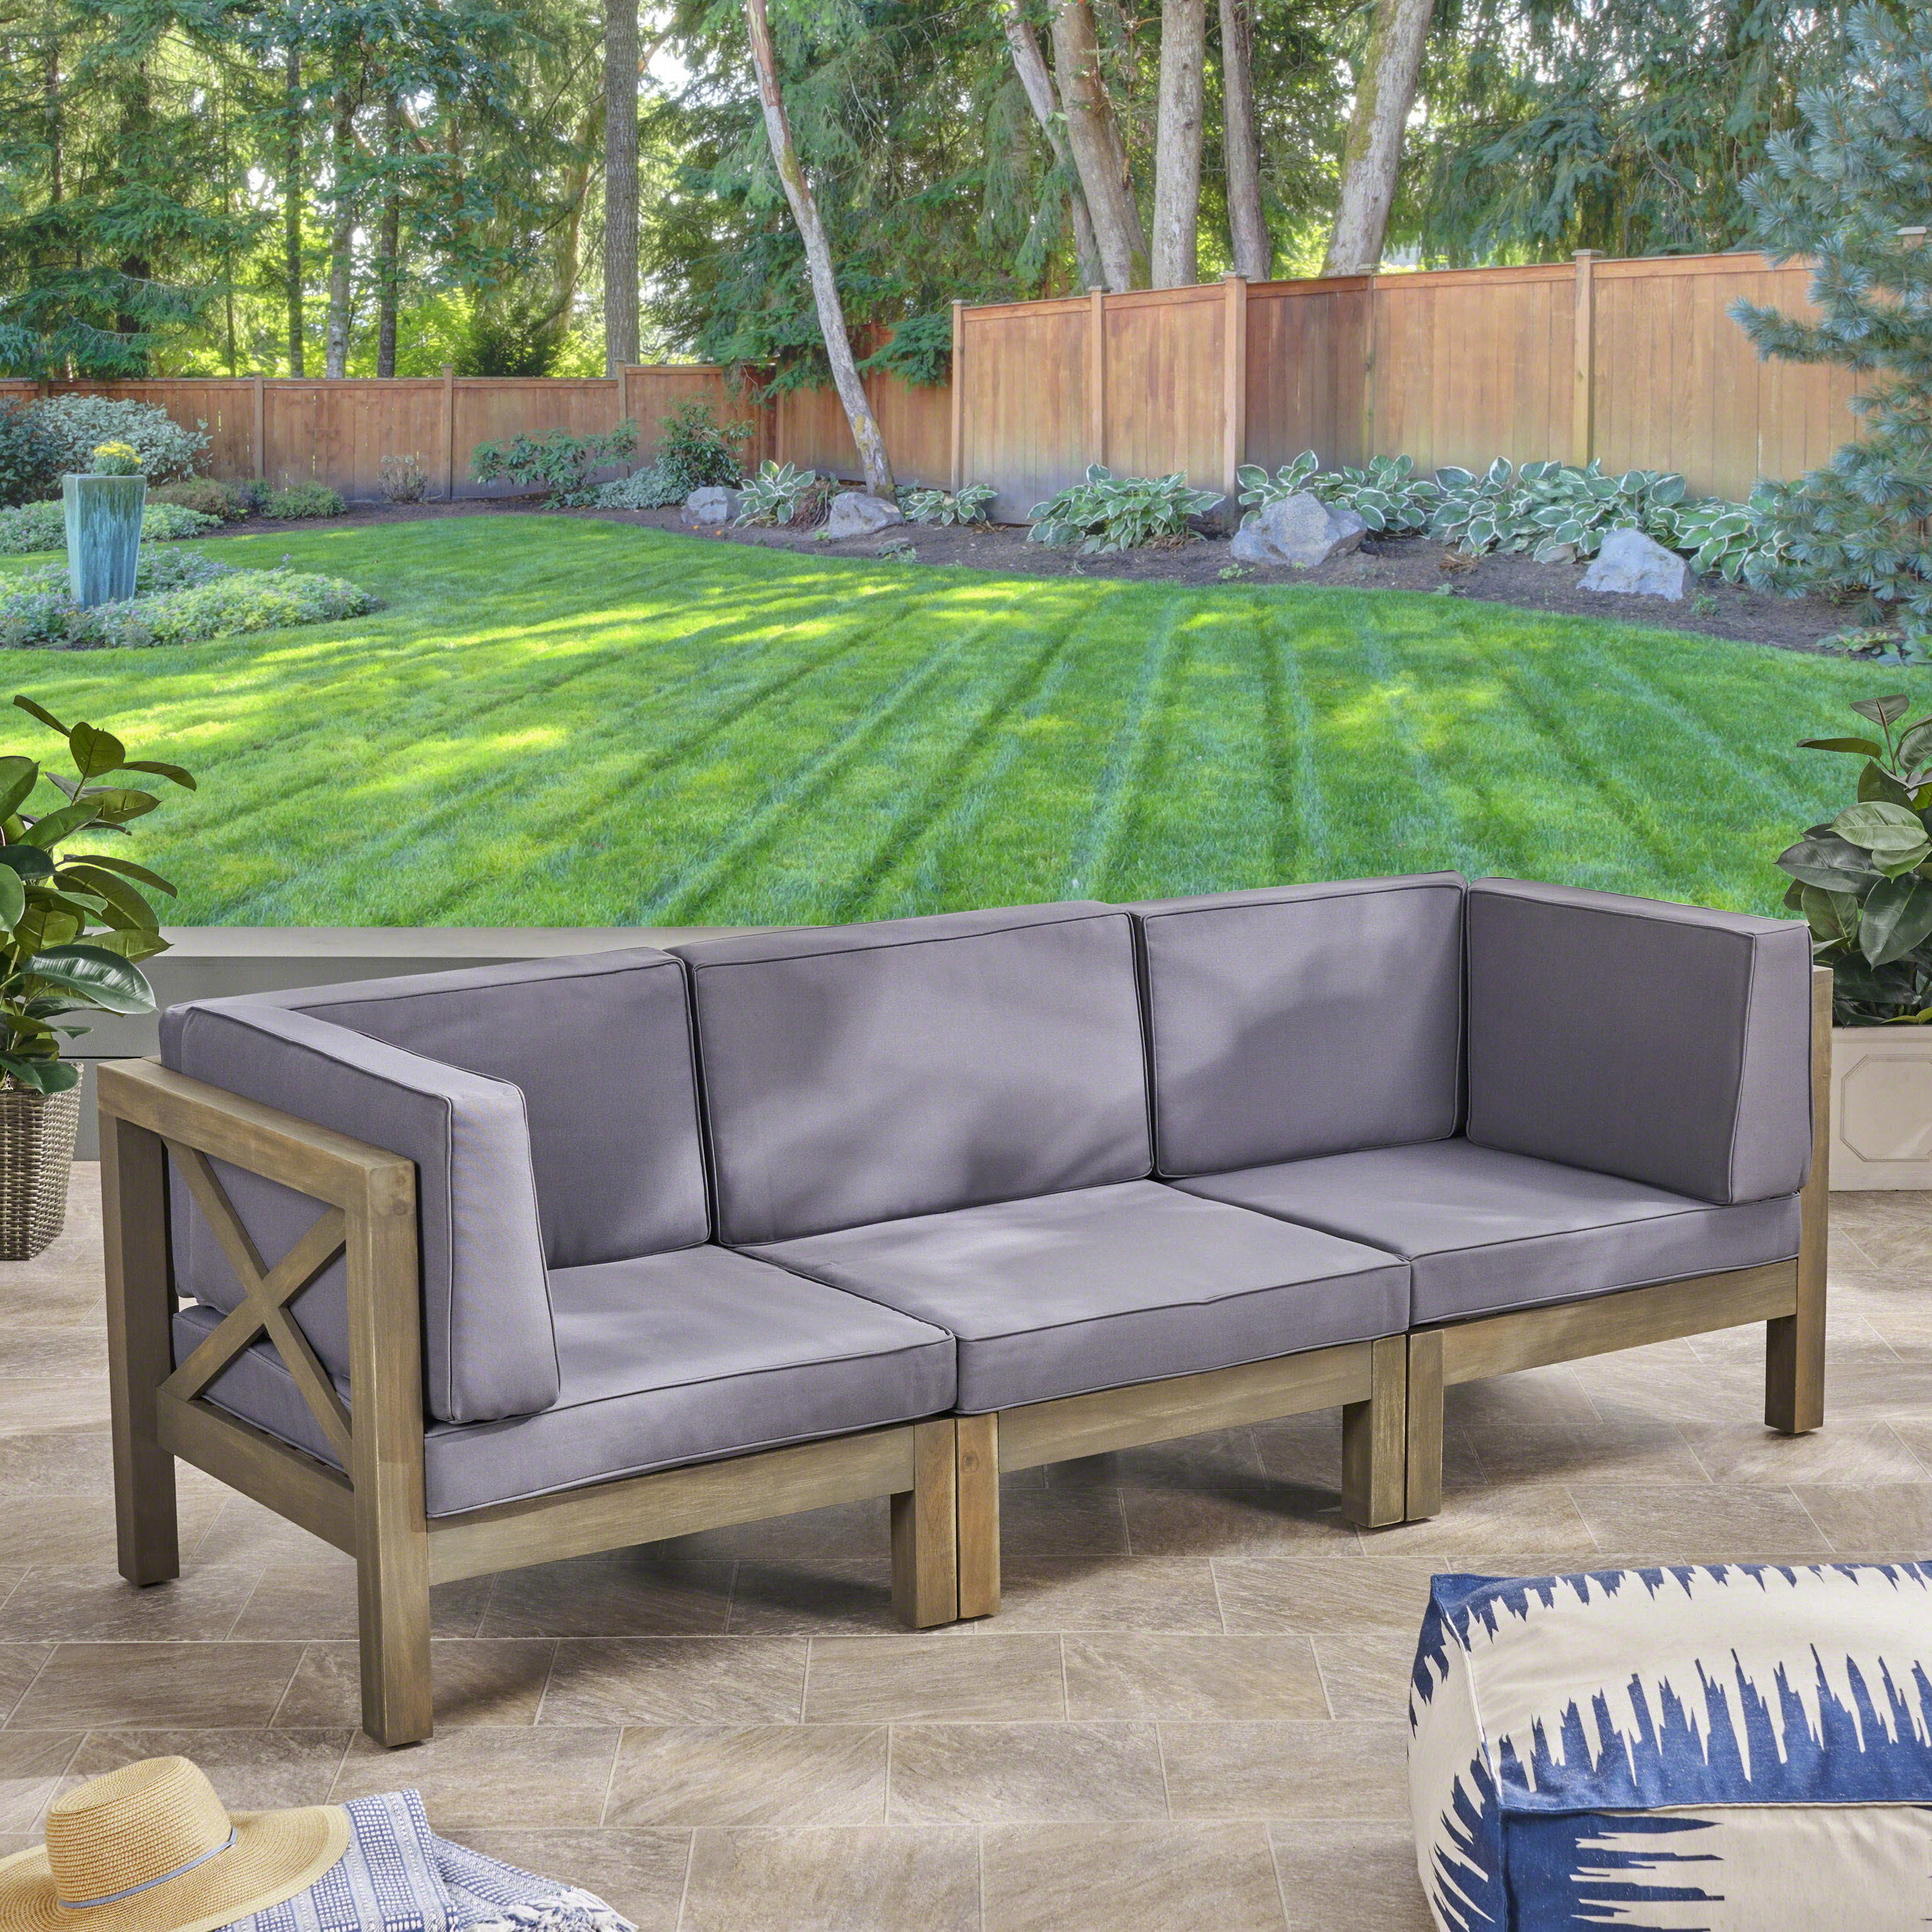 Ellison Patio Sectionals With Cushions For 2019 Ellison Patio Sofa With Cushions (View 5 of 20)